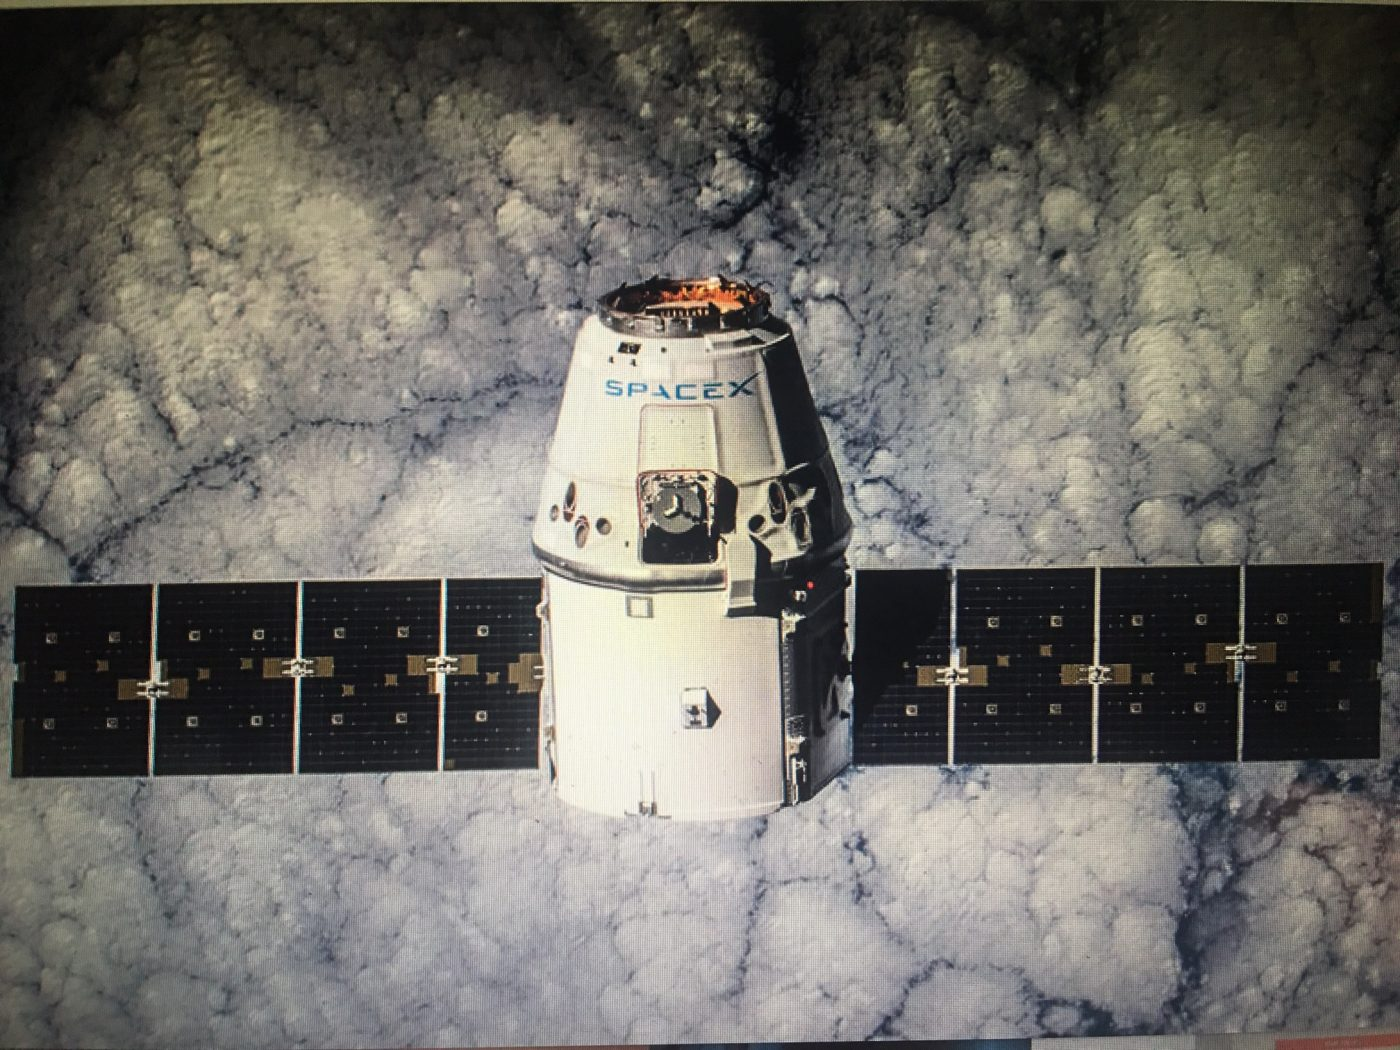 CRS5 Dragon in Orbit